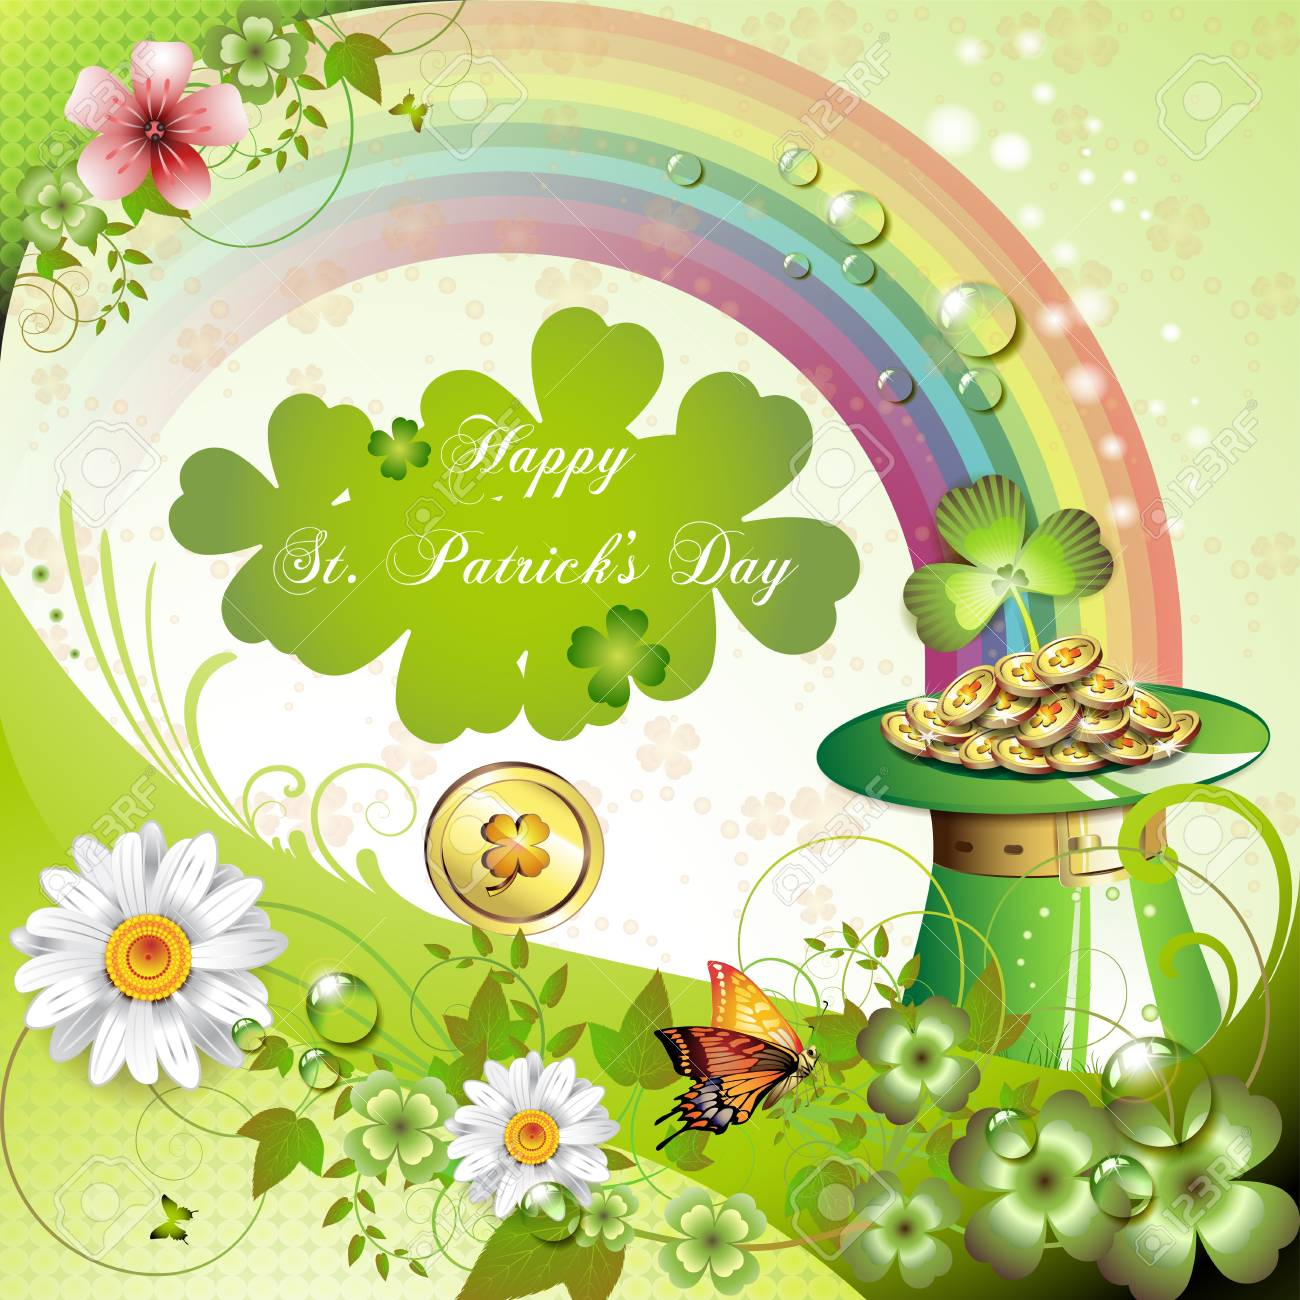 St. Patrick s Day card design with clover and coins Stock Vector - 12410880